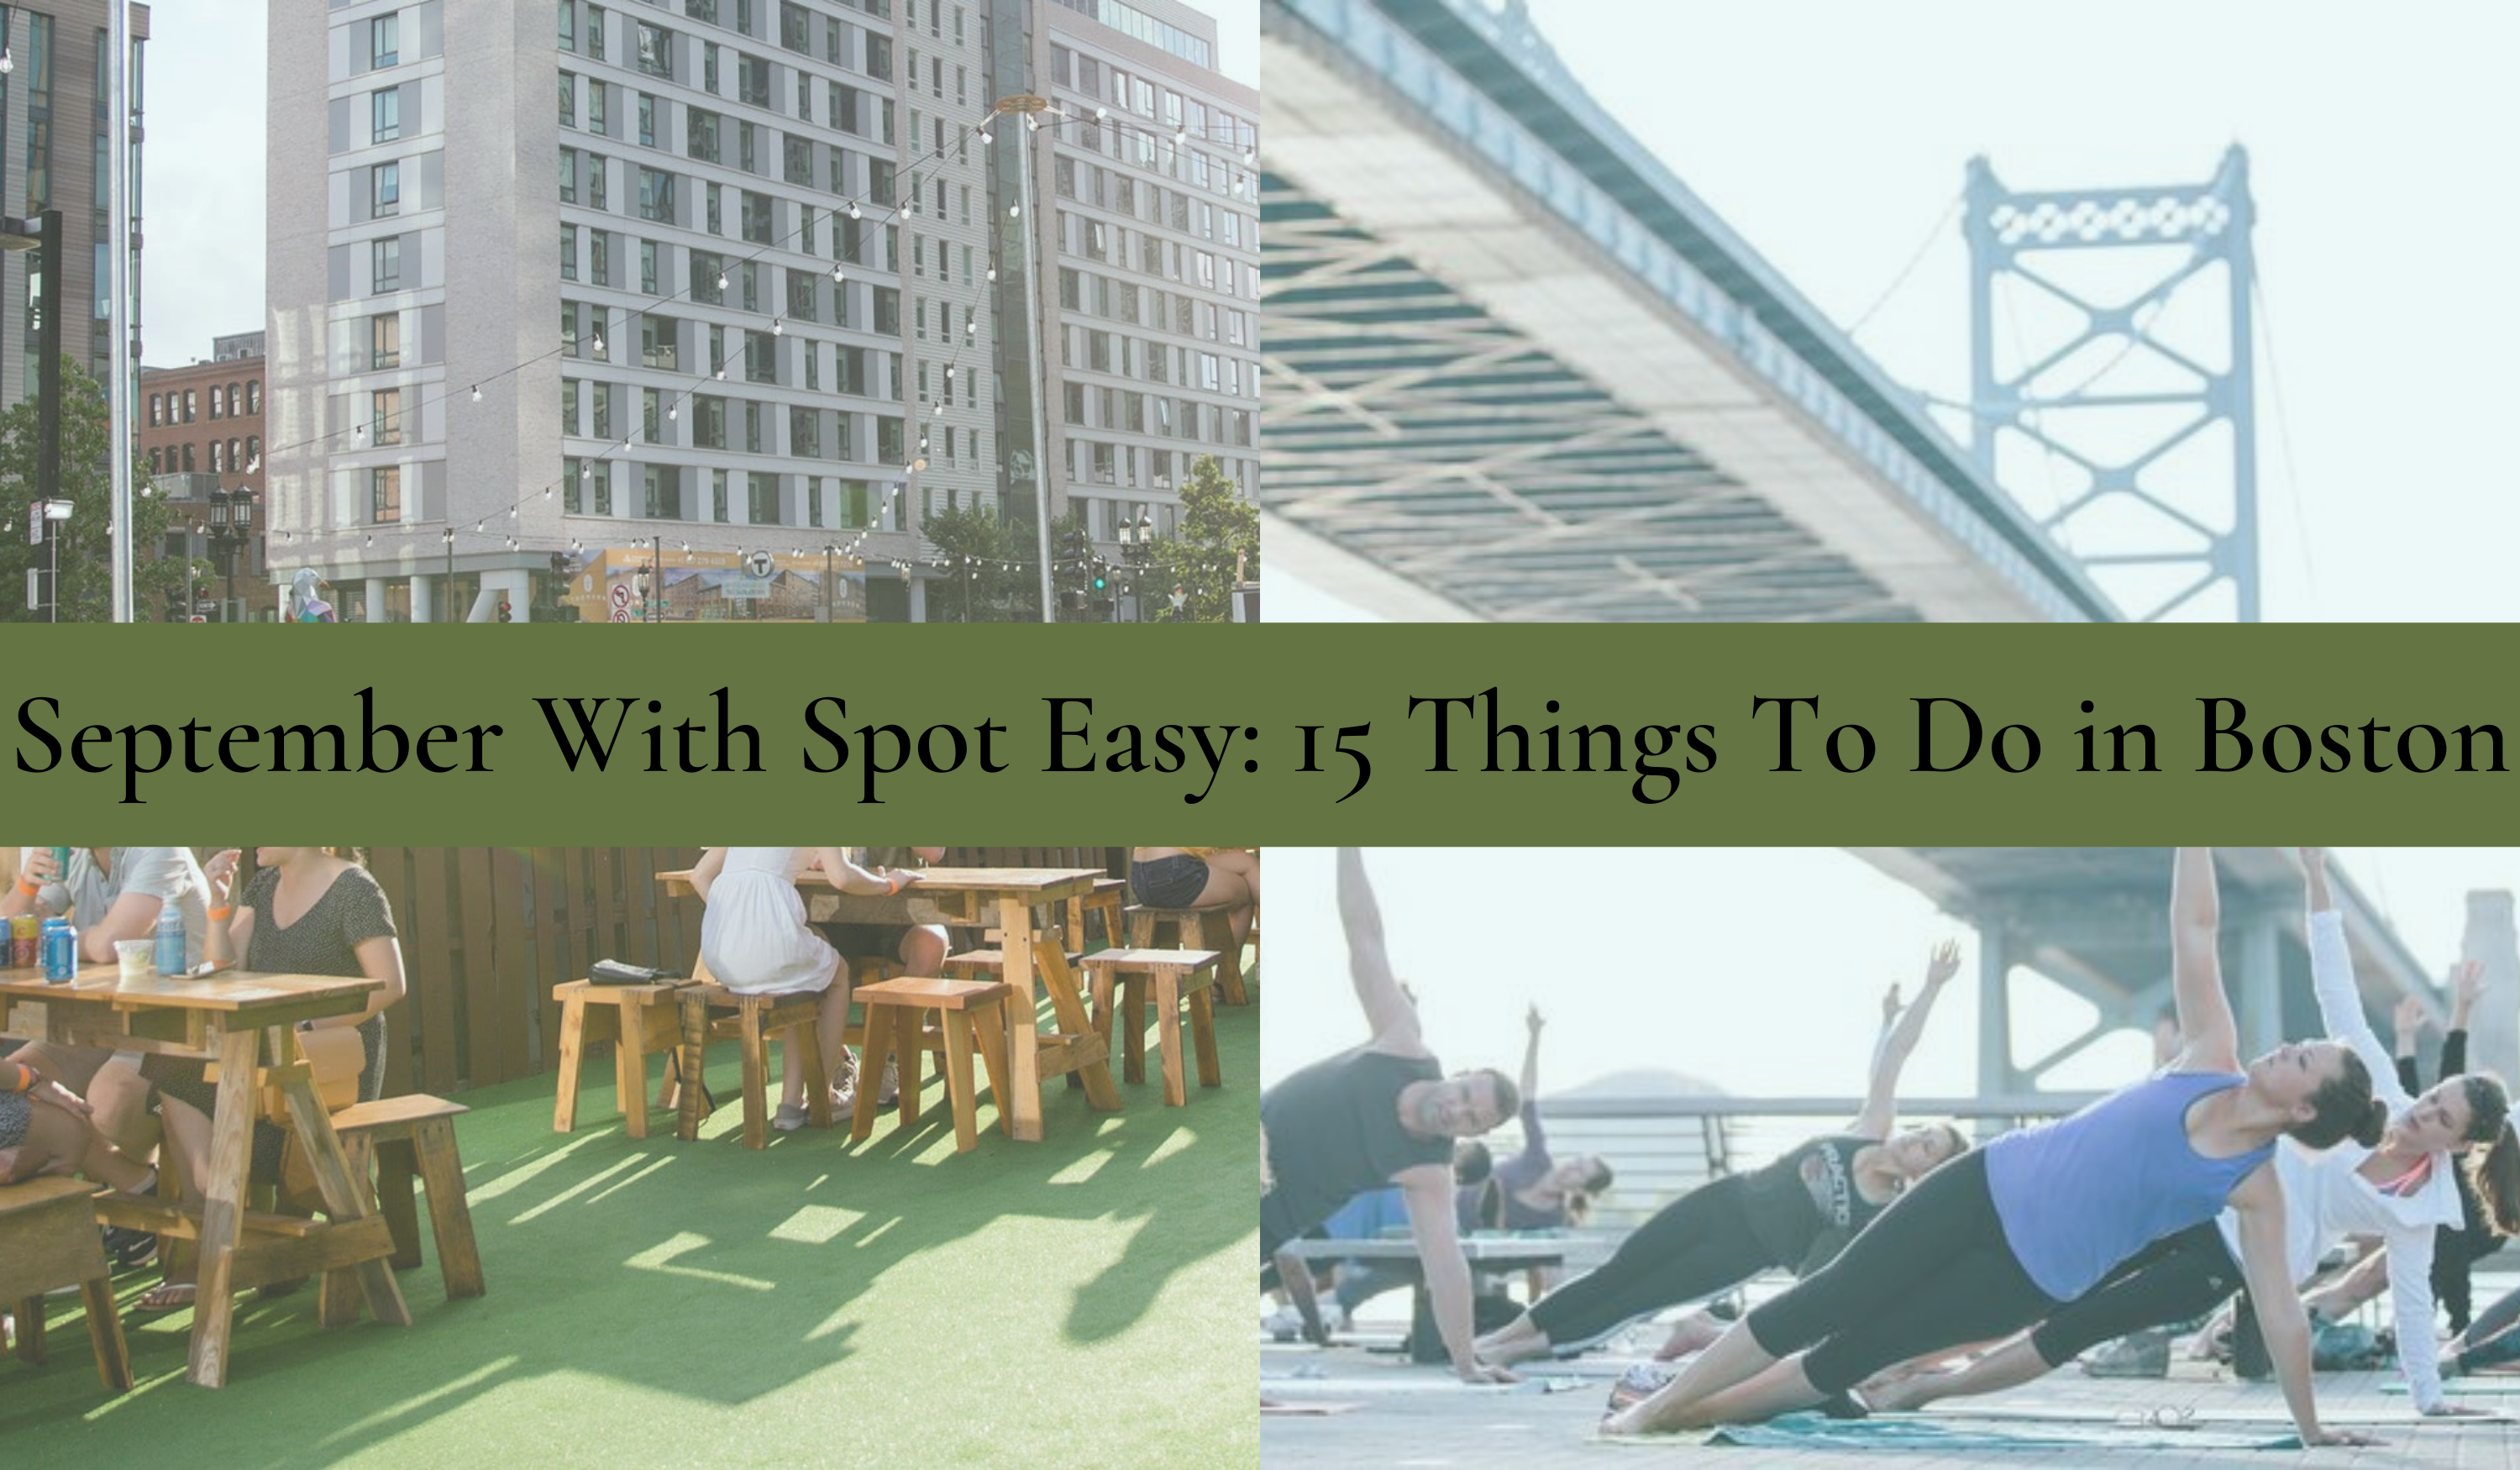 text reads September with spot easy: 15 things to do in boston, with photo of people practicing yoga and people at the beer garden in boston